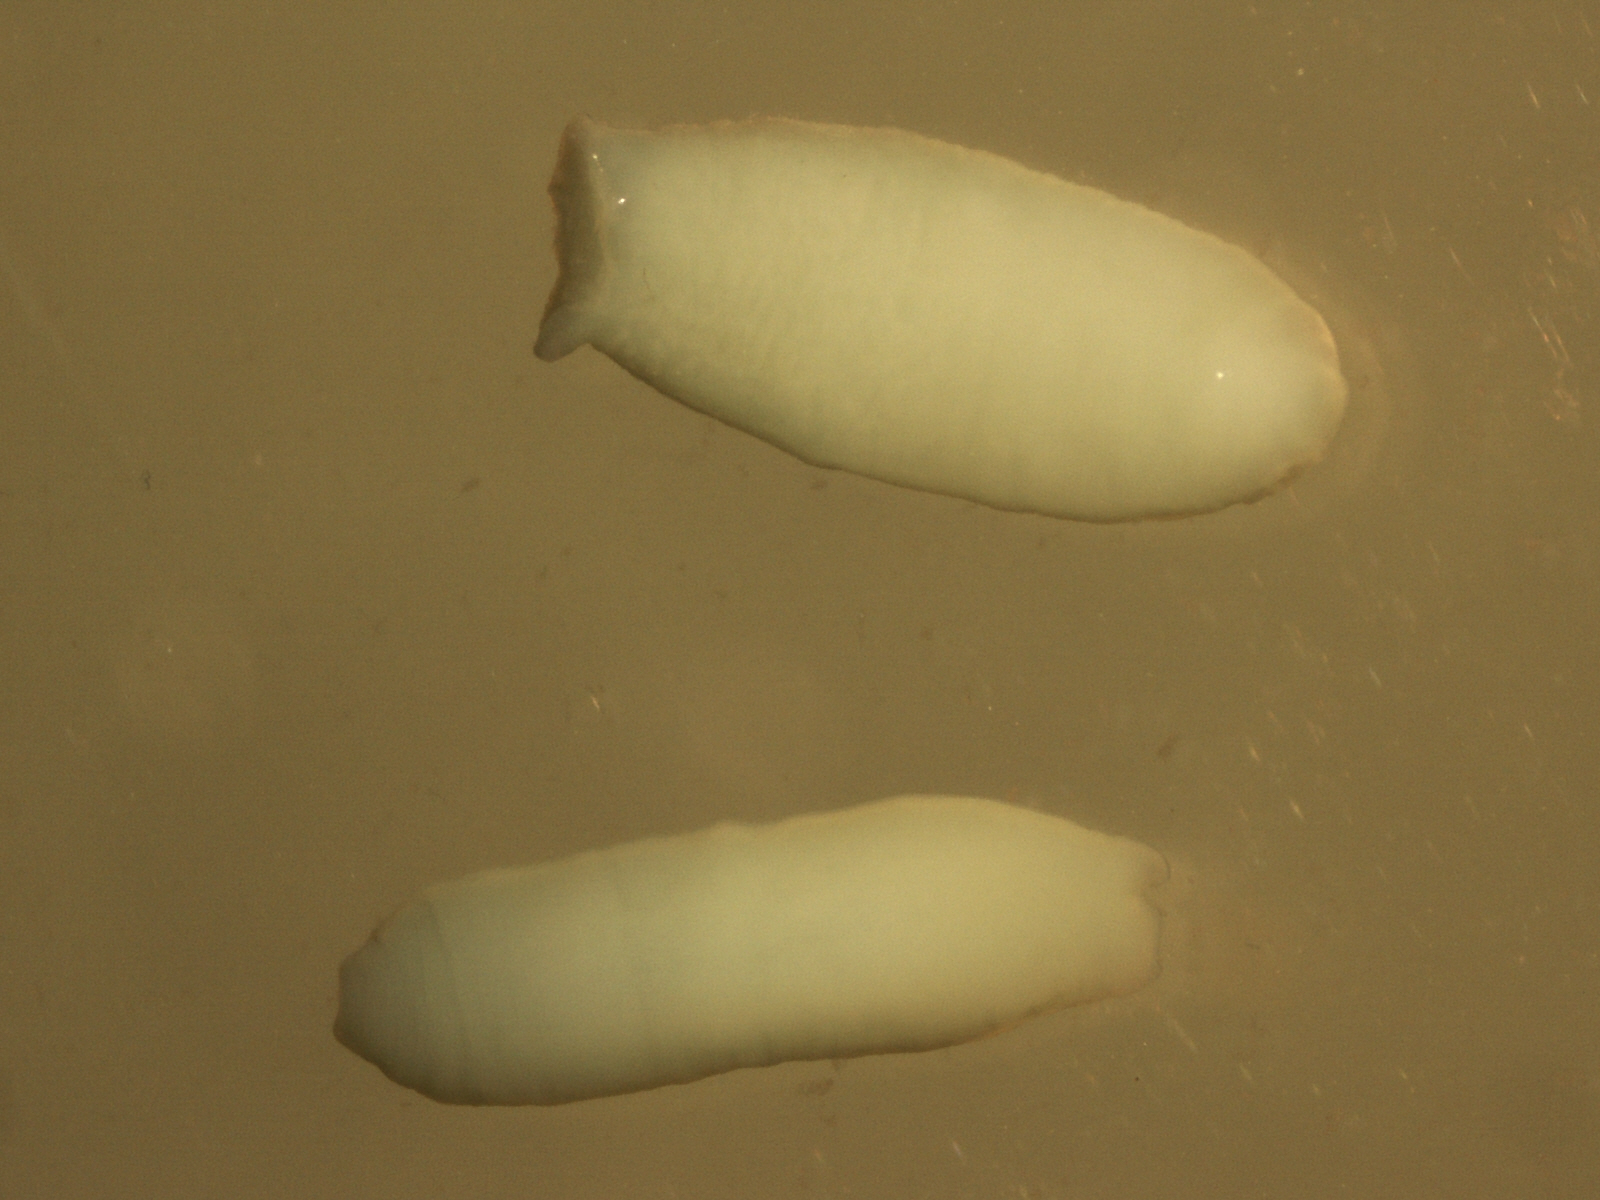 Parasite Eggs In Human 28 Images Docs Channel Macgyver